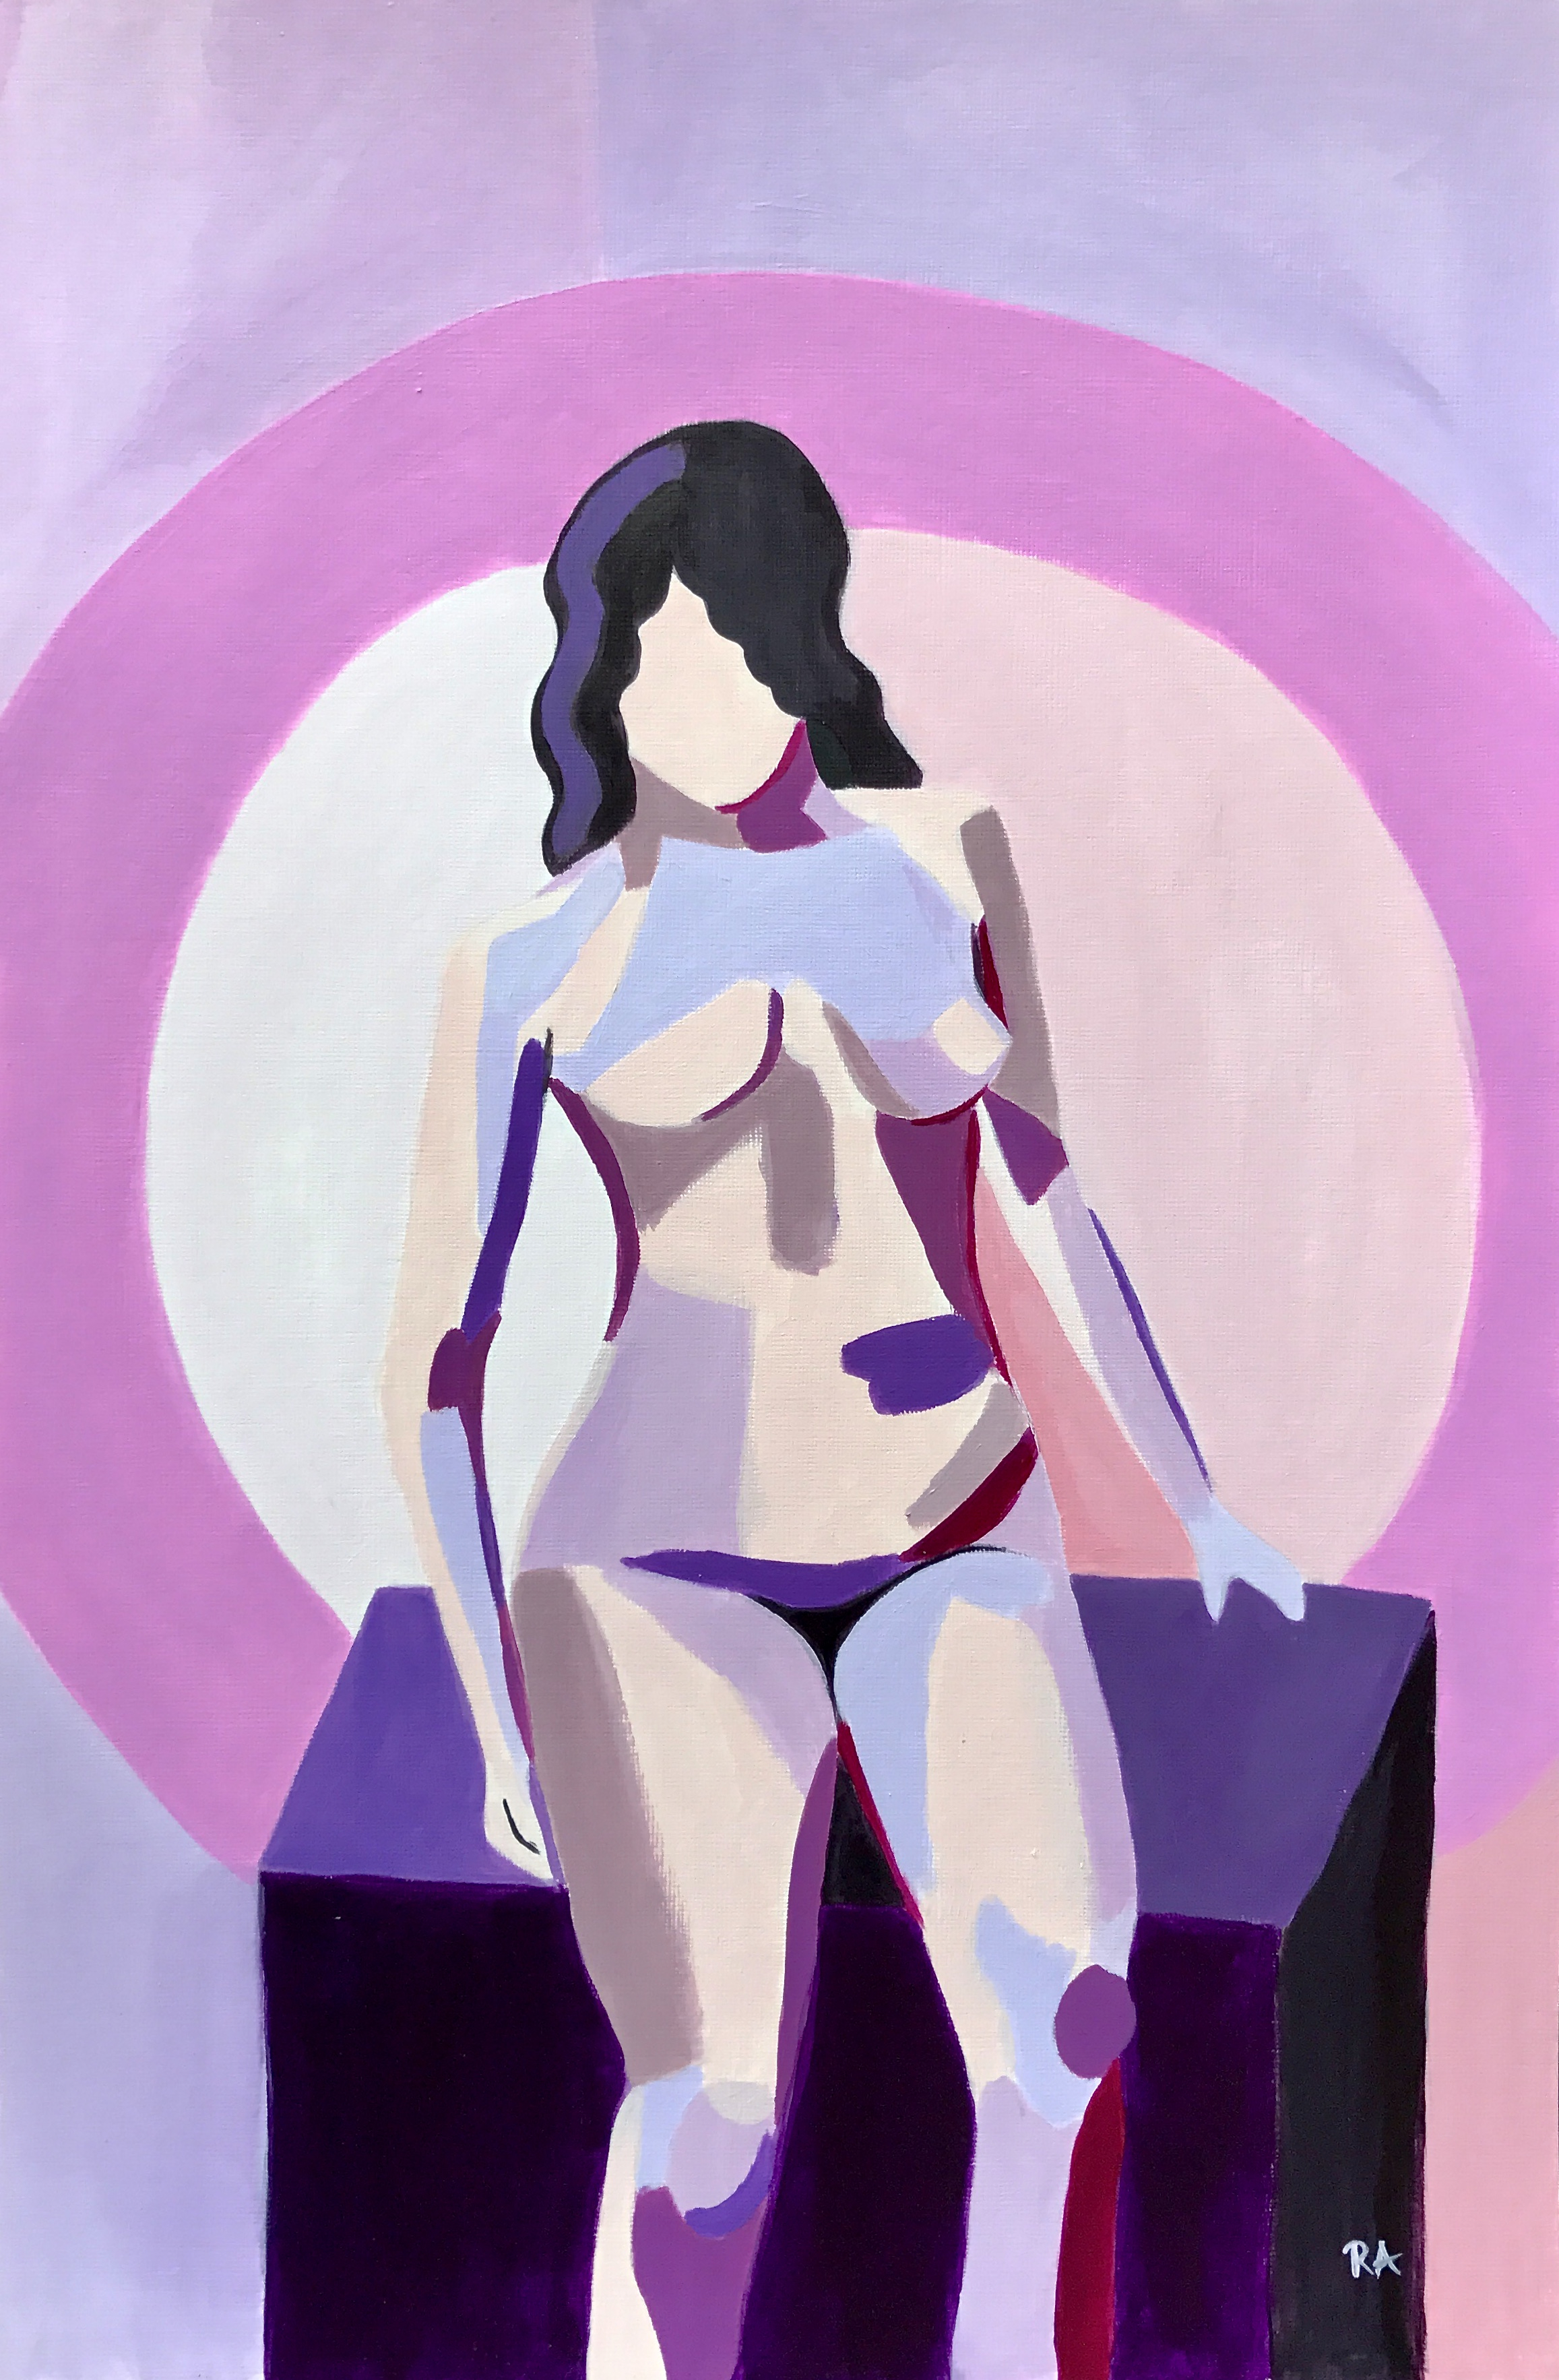 The Pedestal, acrylic on paper, 2017